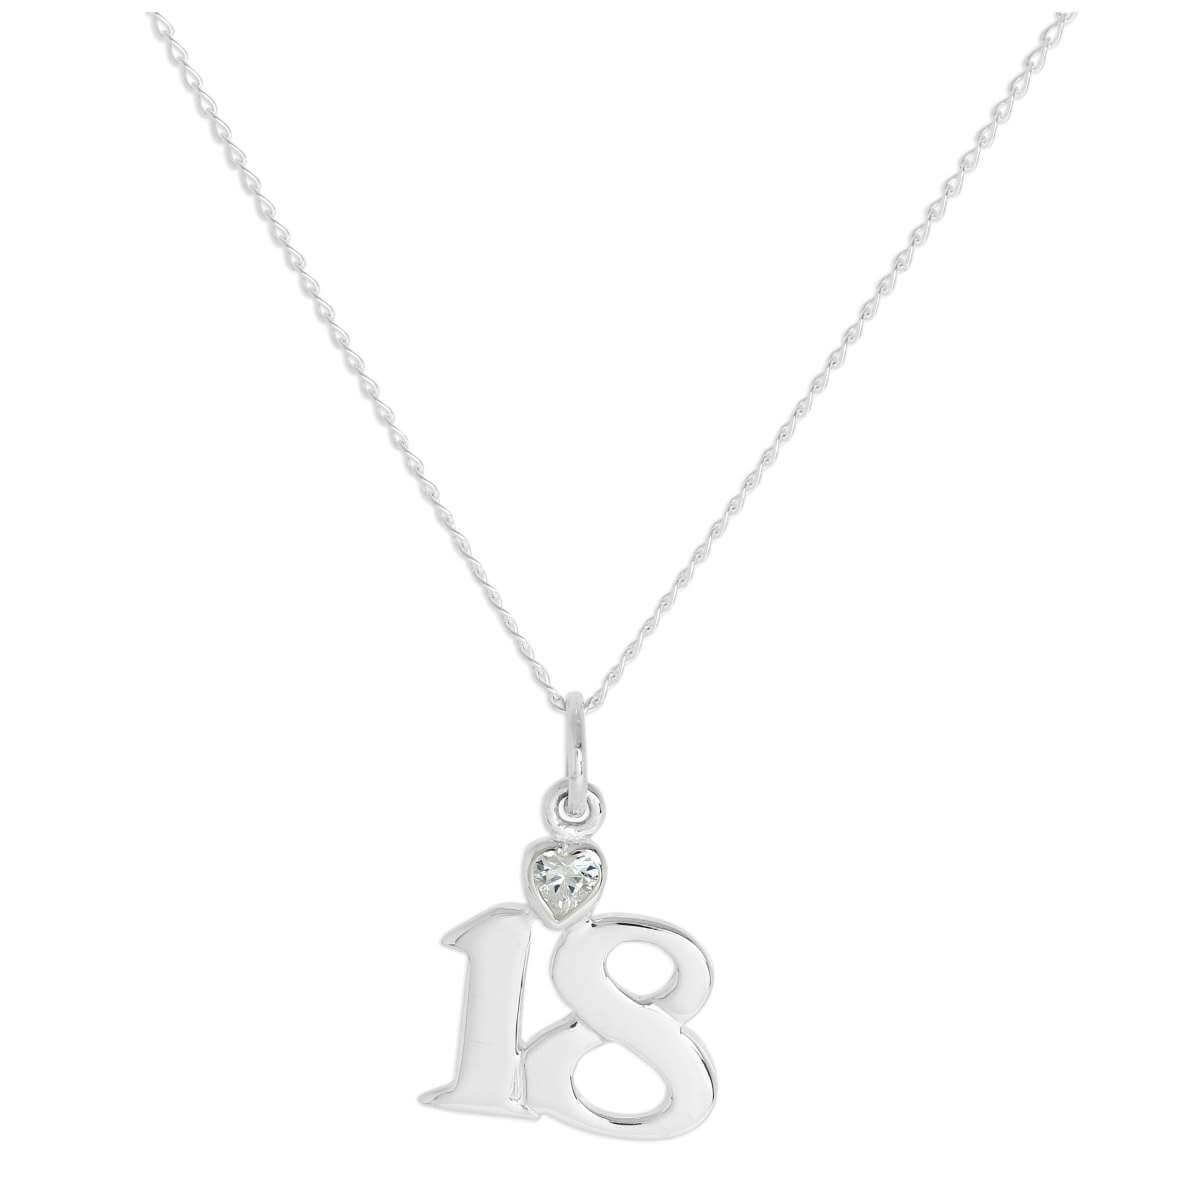 Sterling Silver 18 Pendant with Clear CZ Crystal Heart on Chain 16 - 24 Inches